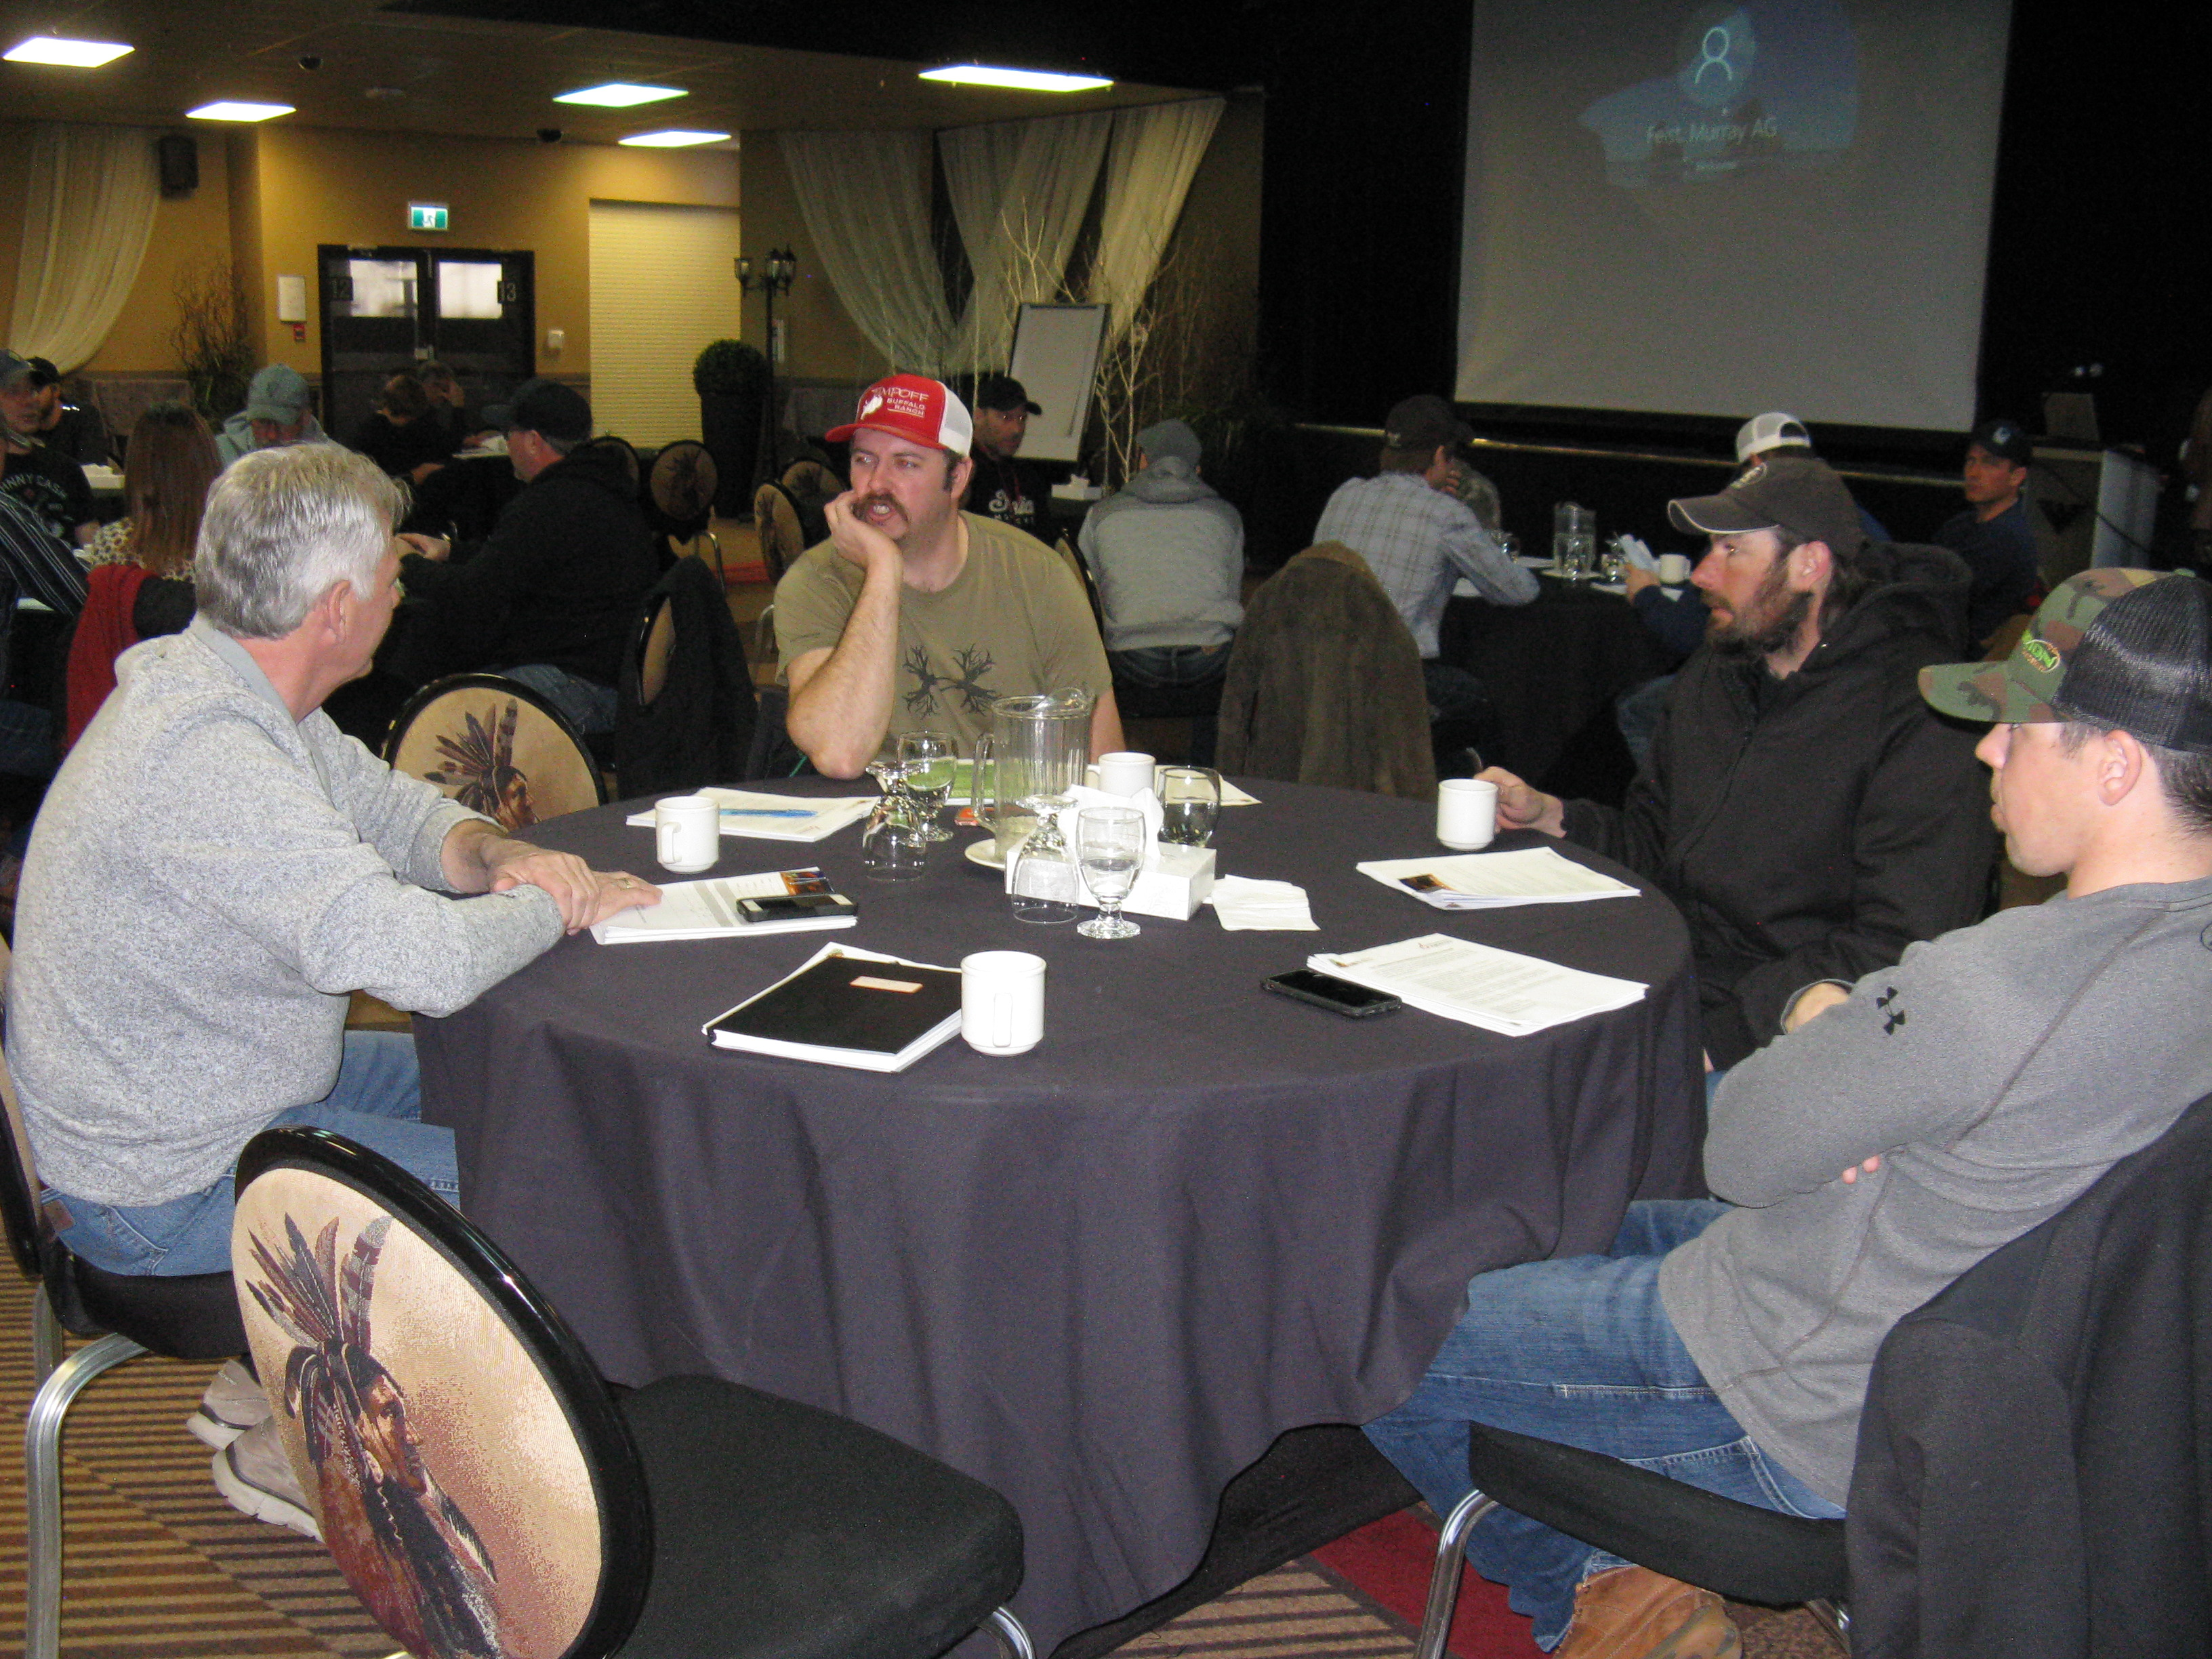 Feb 28, 2019 - Convention Attendance